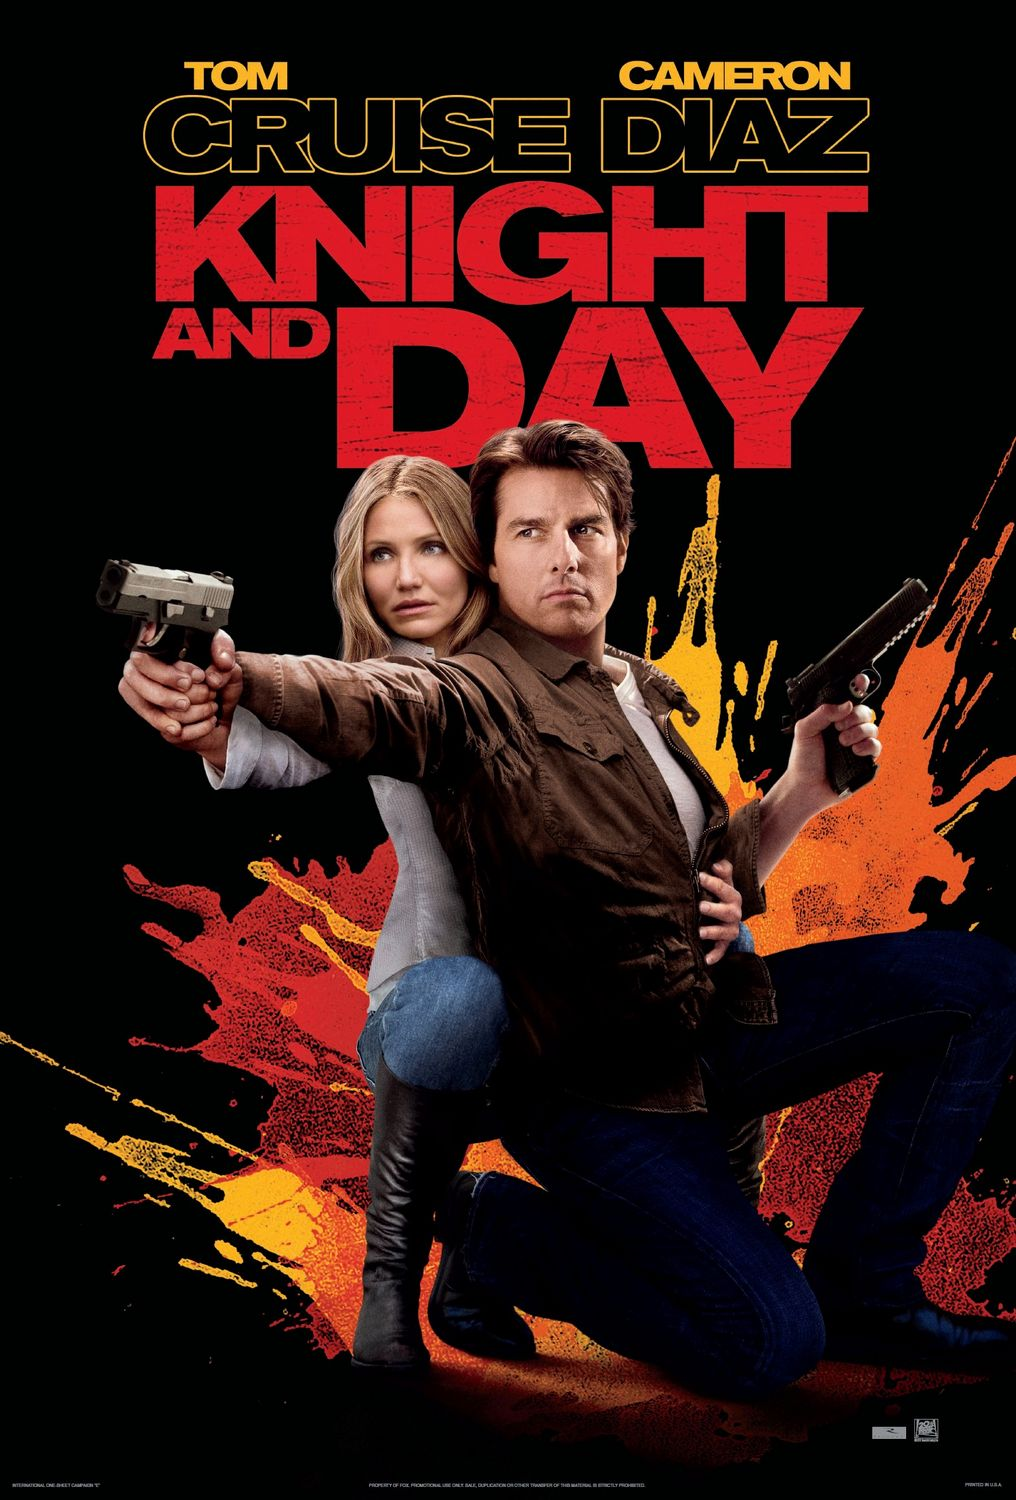 Knight and Day  poster is copied by Bang Bang